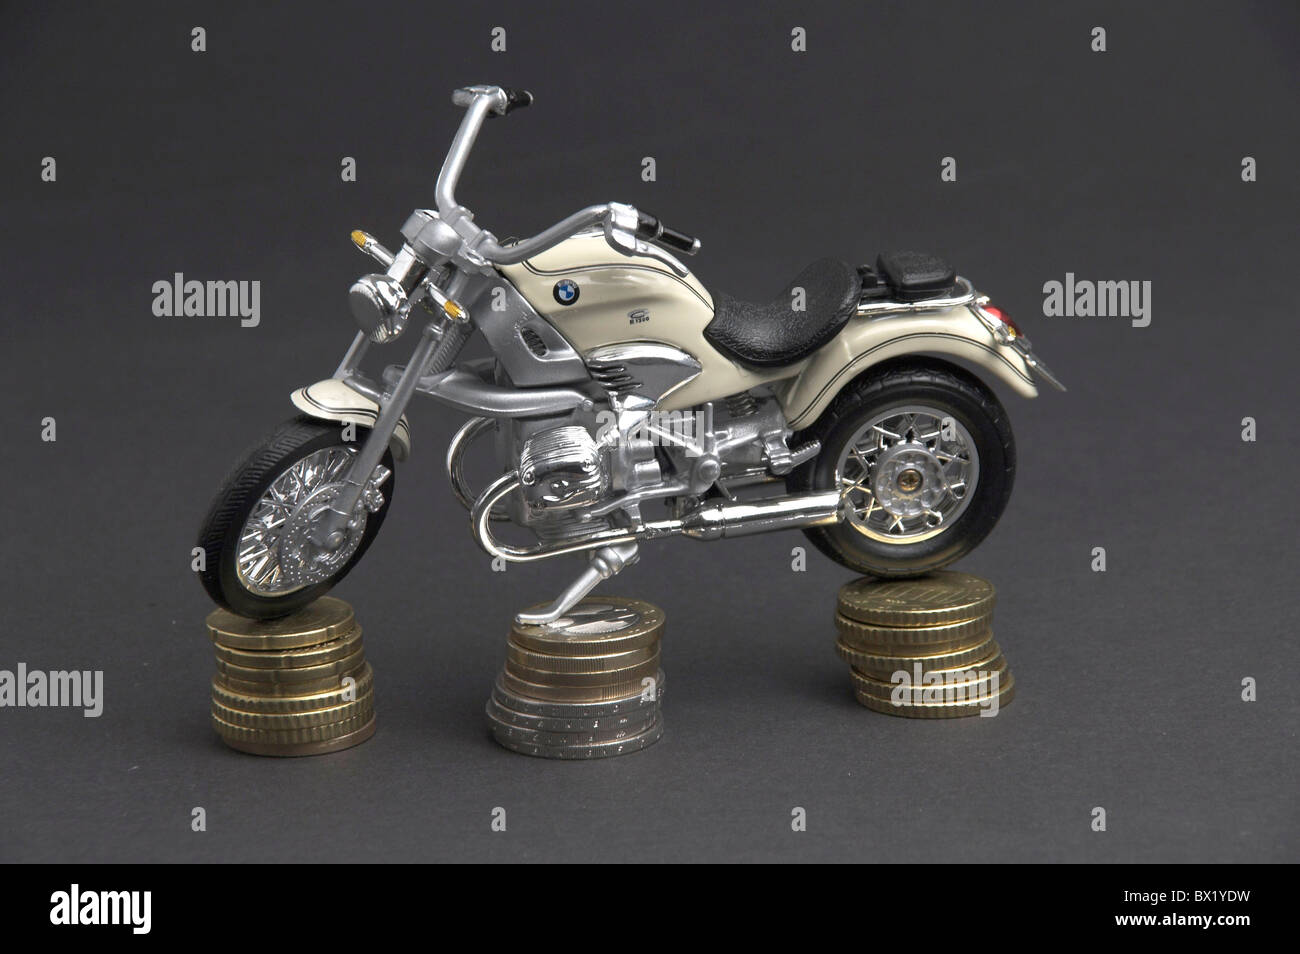 Image result for saving money on motorbike